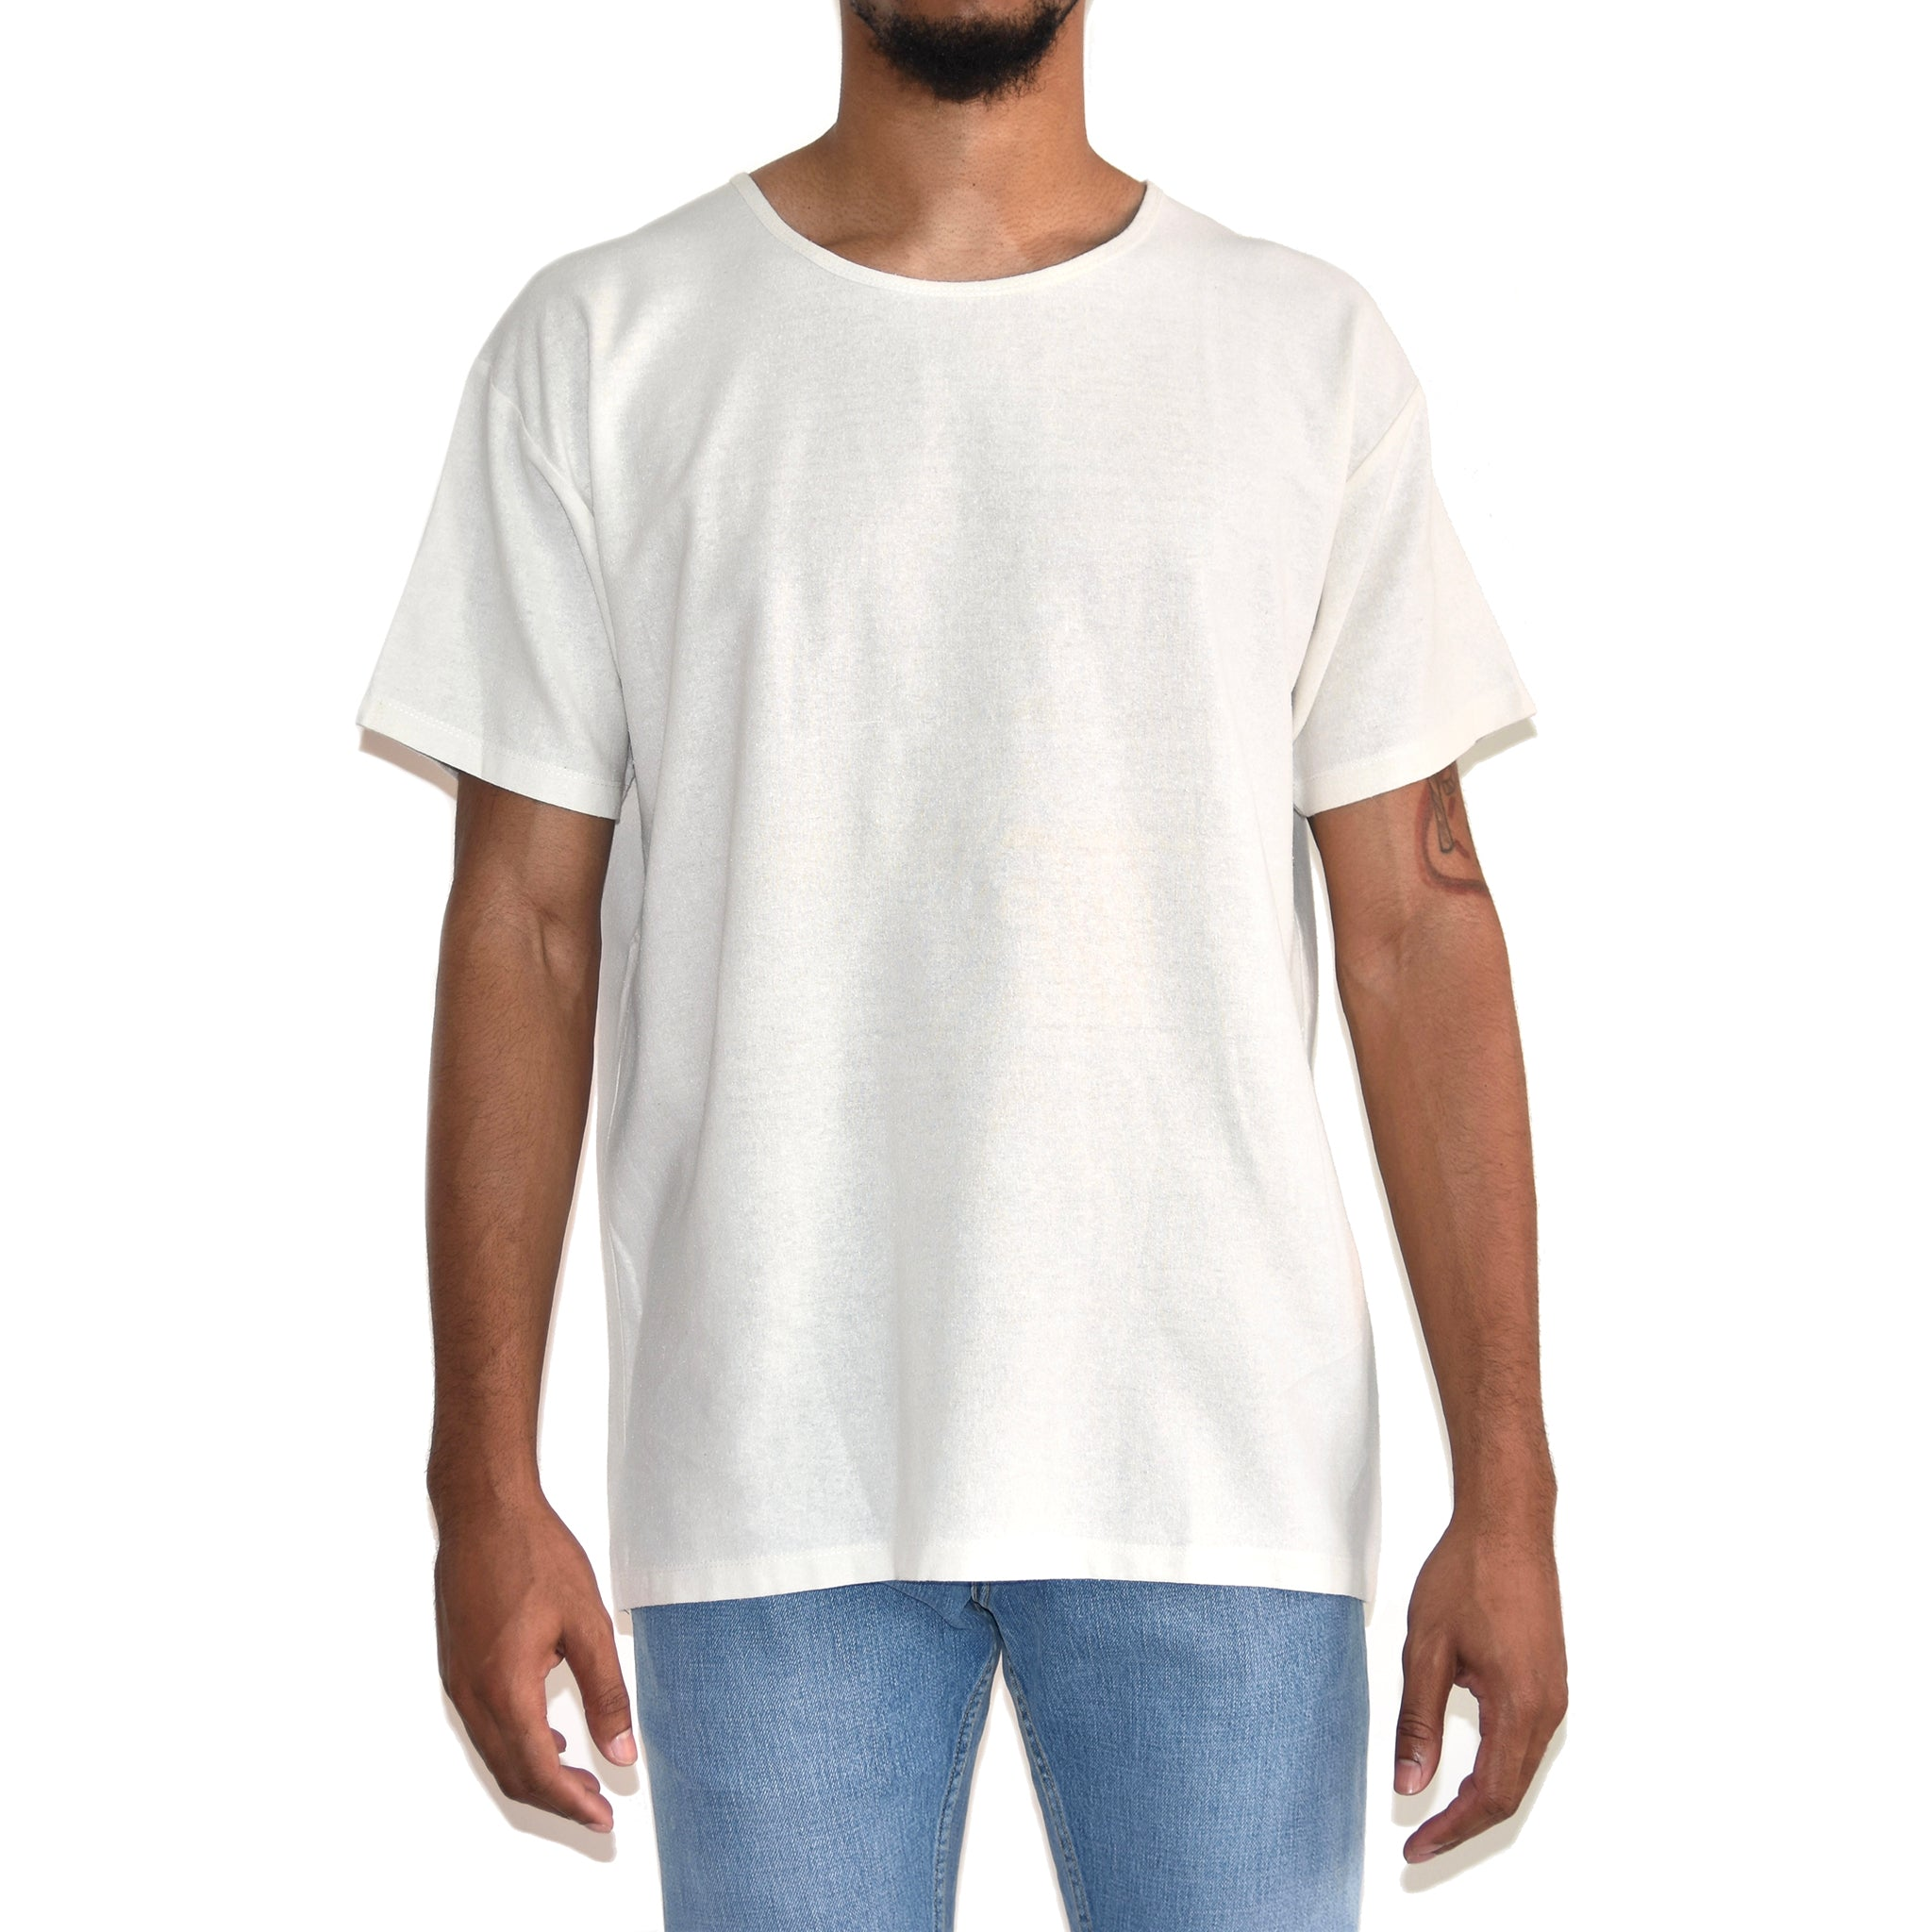 Personal Effects White Relaxed T-shirt on Well(un)known Available now on Wellunknown.com